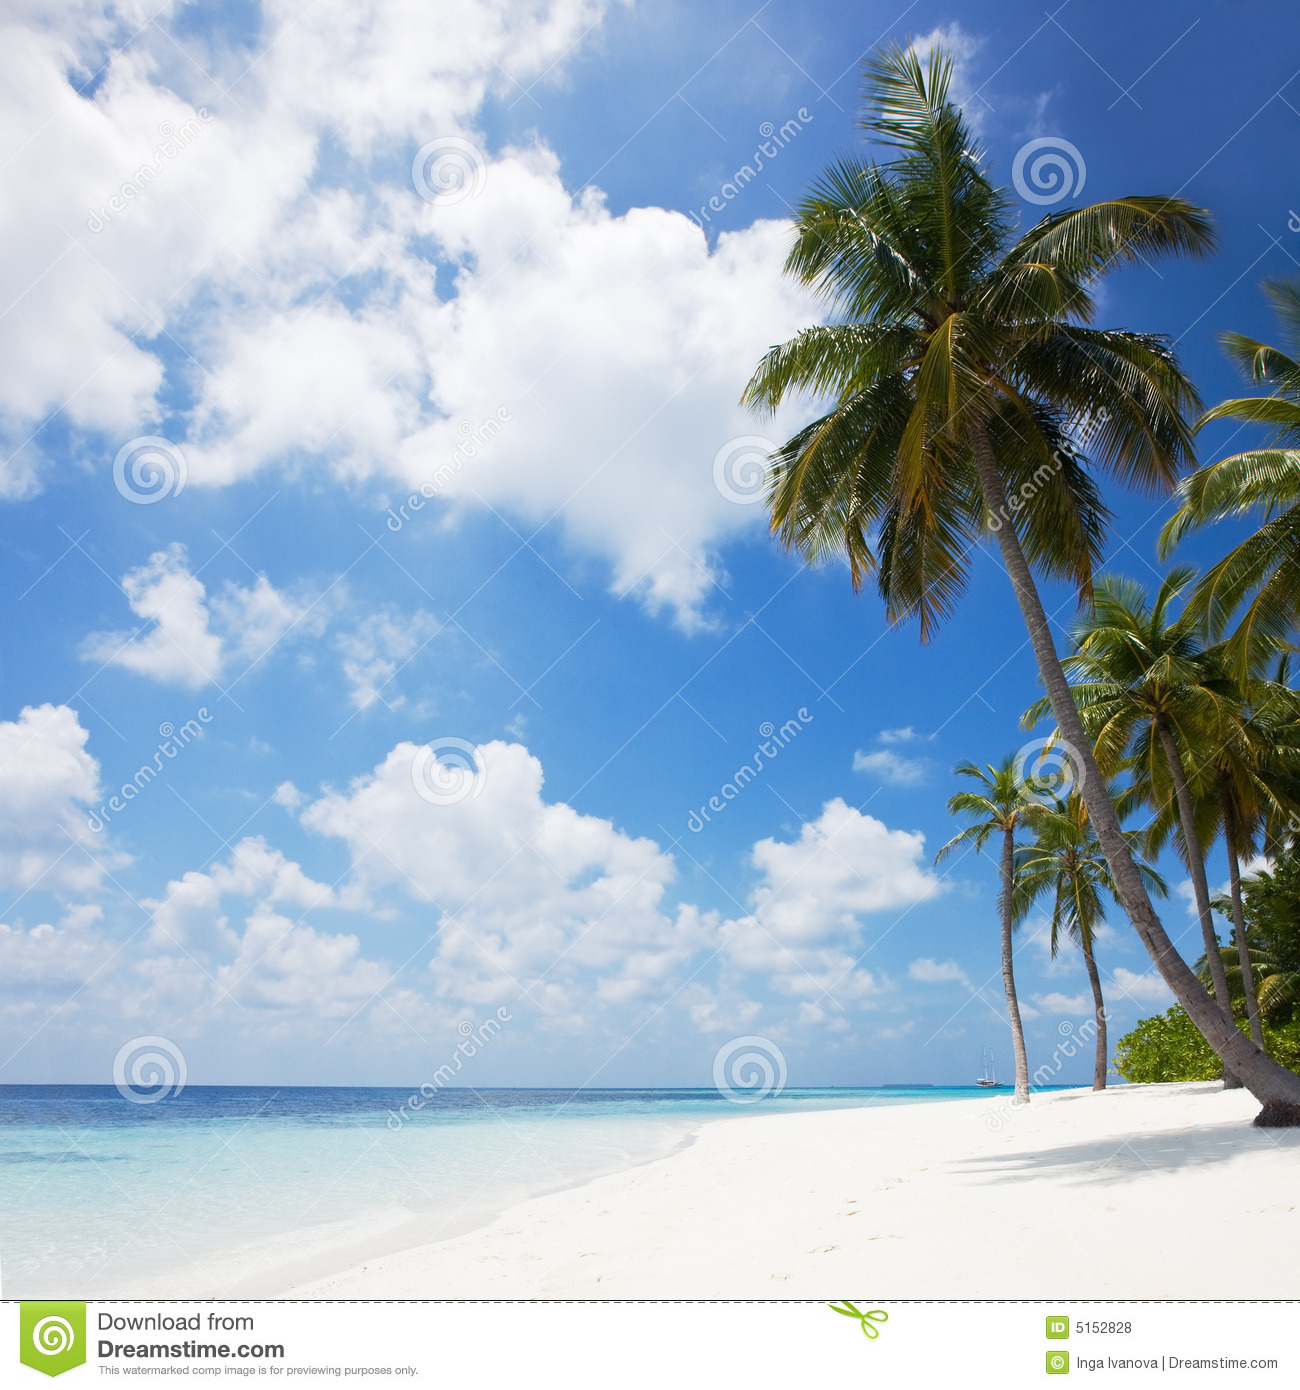 Beautiful Sunny Day At Tropical Beach Royalty Free Stock: Beautiful Tropical Beach Stock Photo. Image Of Paradise